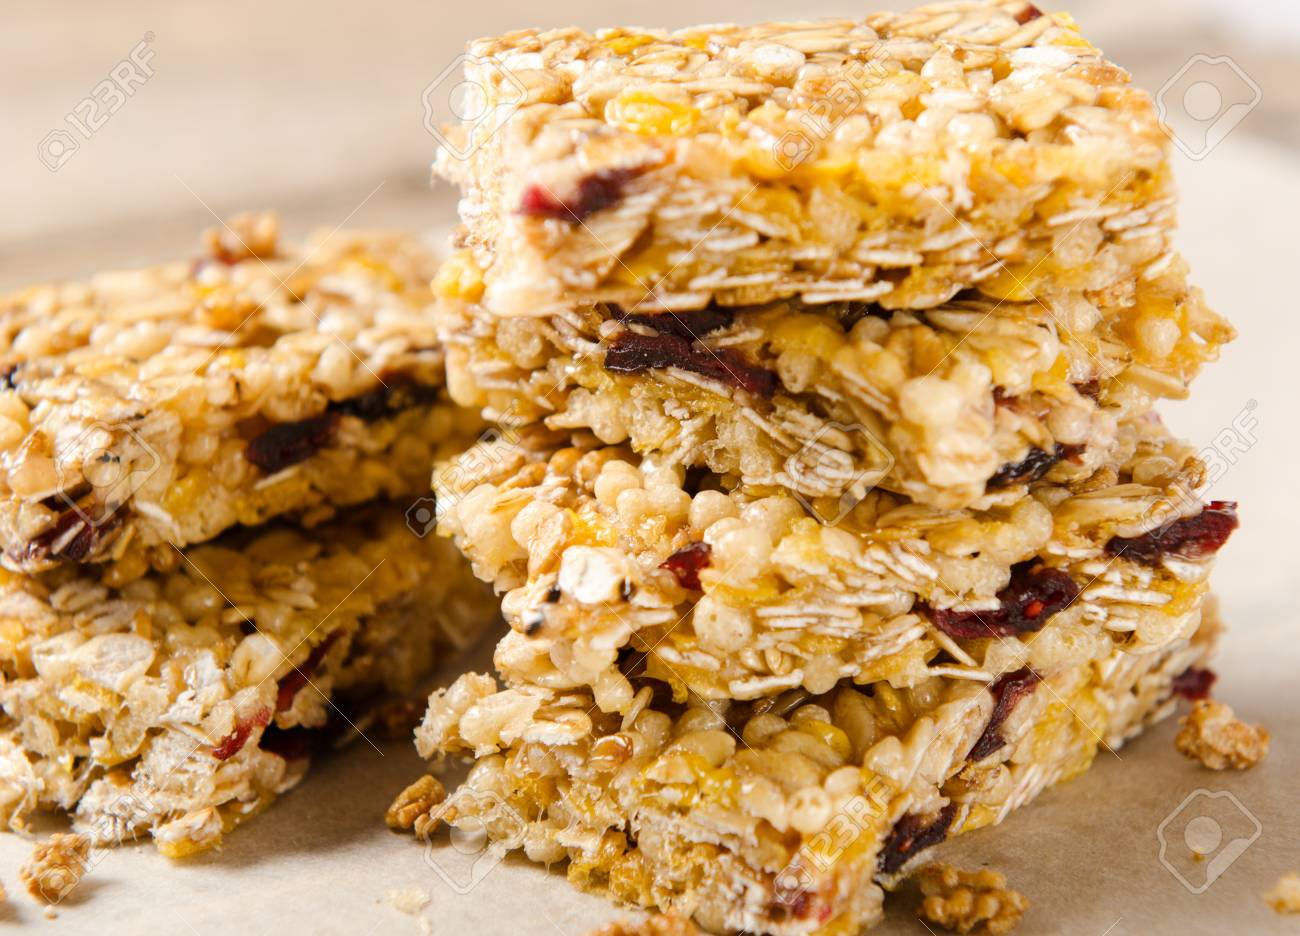 A Stack Of Granola Bars On Parchment Paper Rustic Style Healthy Food Dietary